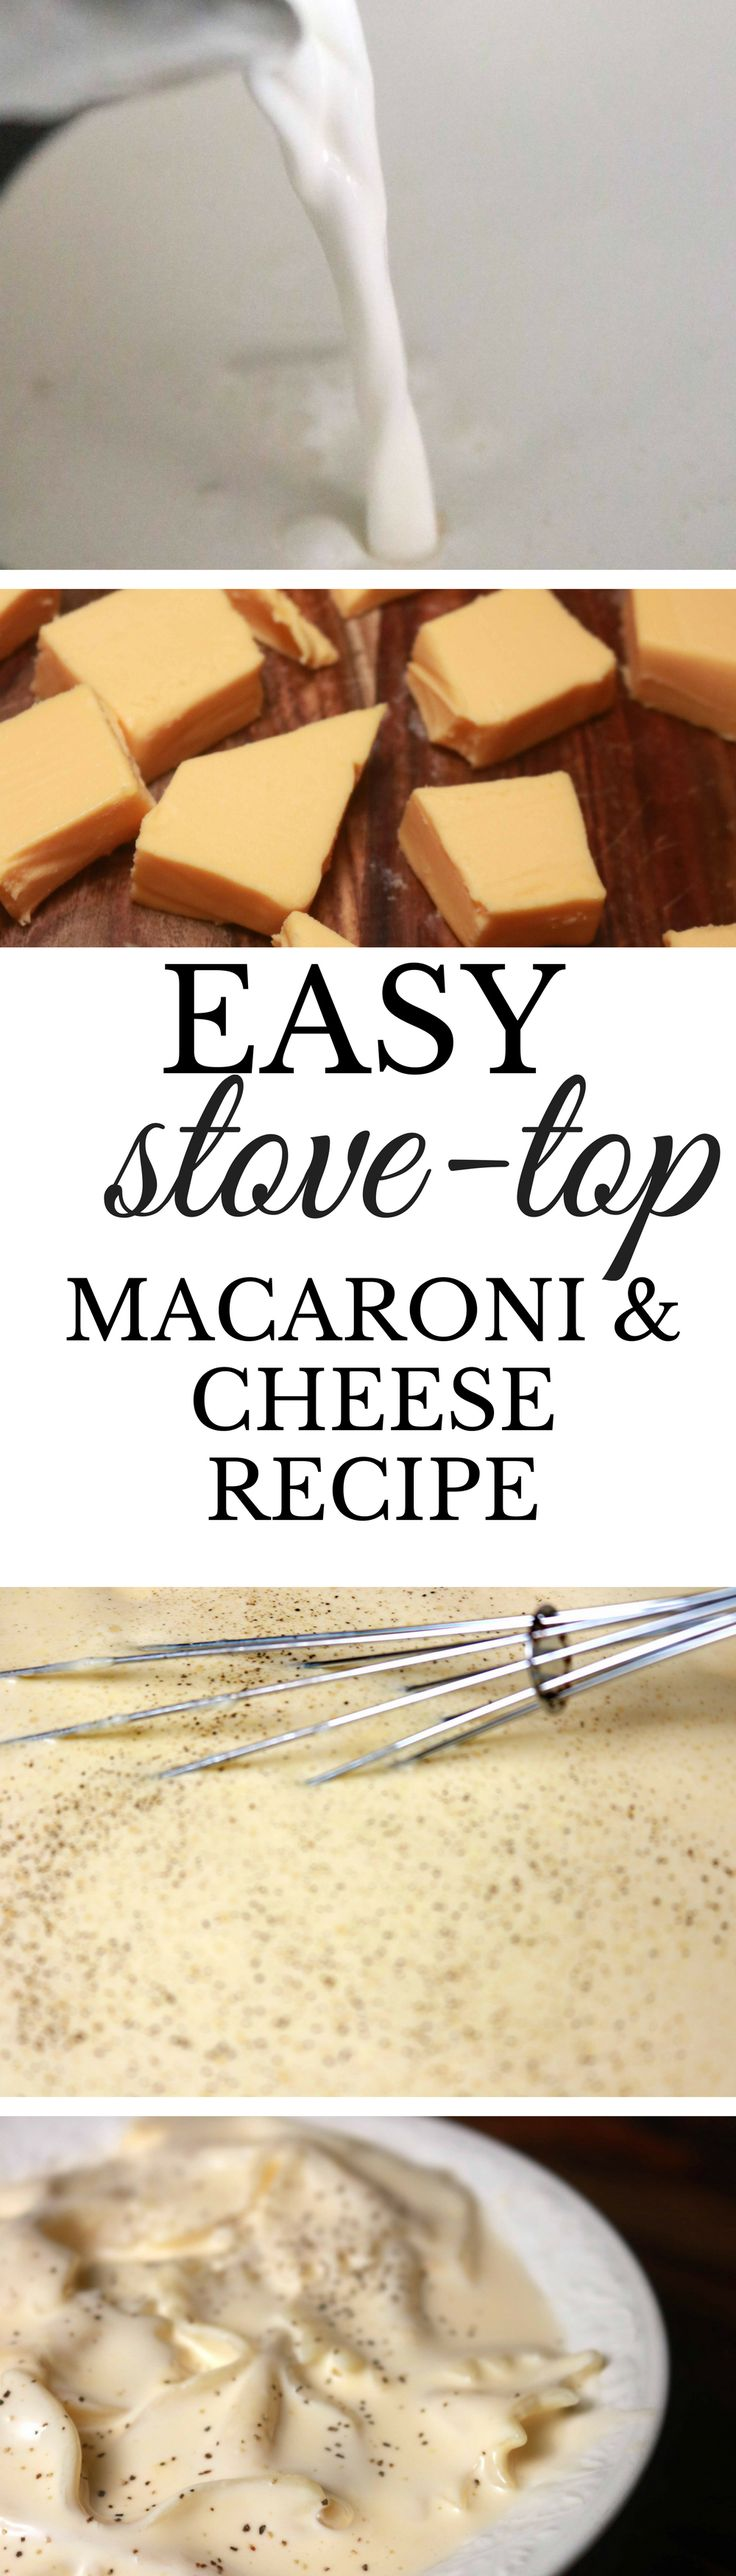 We love this classic thanksgiving recipe! Who else is going to be making this easy stove-top macaroni and cheese for their table?  Macaroni and Cheese Stovetop // Macaroni and Cheese Recipe // Macaroni and Cheese Easy // Macaroni and Cheese Creamy // Macaroni and Cheese Homemade // Macaroni and Cheese Velveeta // Macaroni and Cheese Recipe Homemade // Macaroni and Cheese Recipe Velveeta // Macaroni and Cheese Recipe Creamy // Macaroni and Cheese Recipe Stovetop // Macaroni and Cheese Recipe…